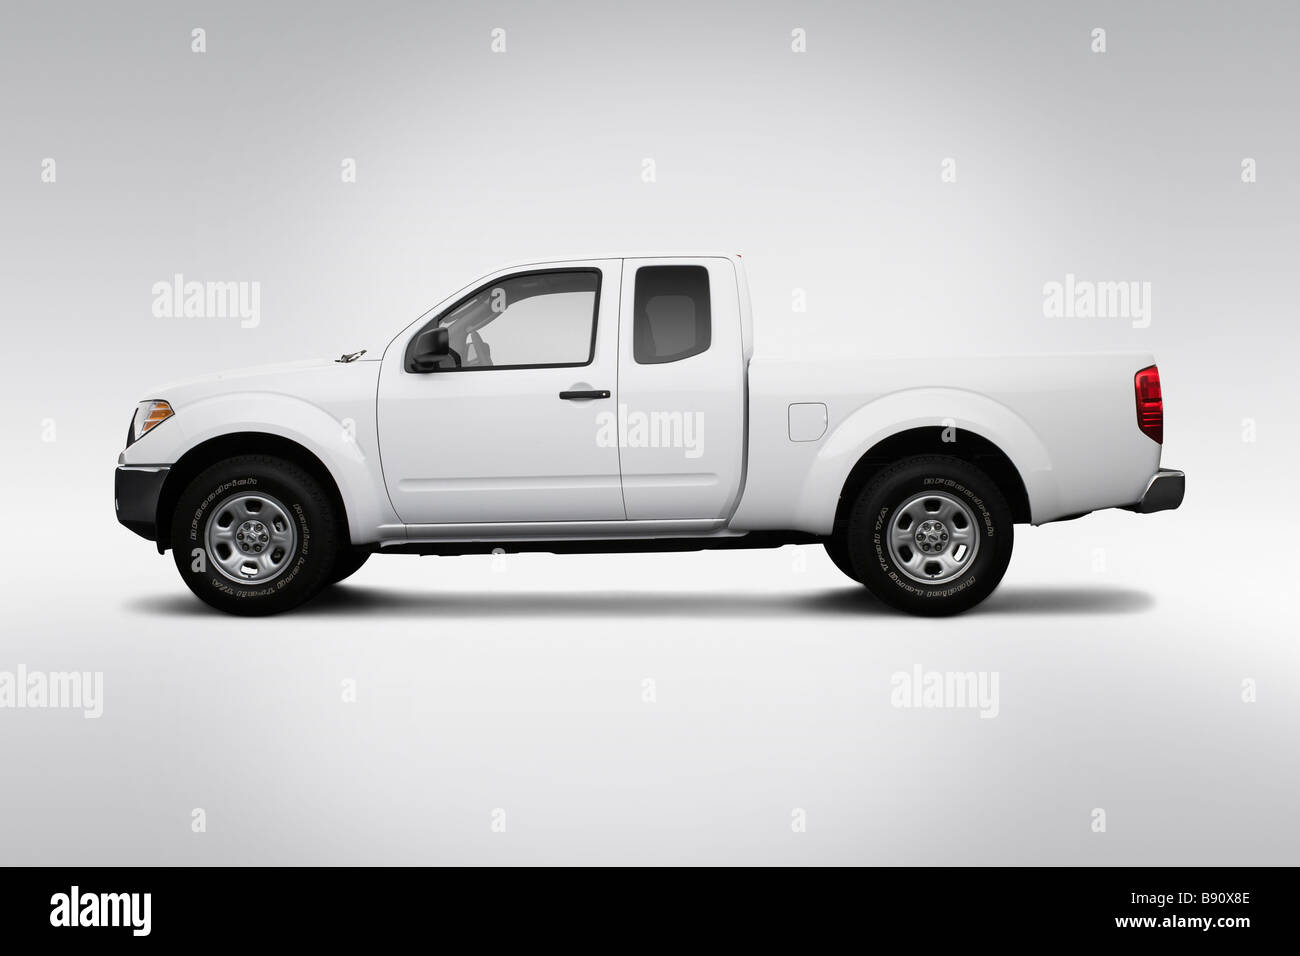 2009 nissan frontier se in white drivers side profile stock 2009 nissan frontier se in white drivers side profile vanachro Gallery